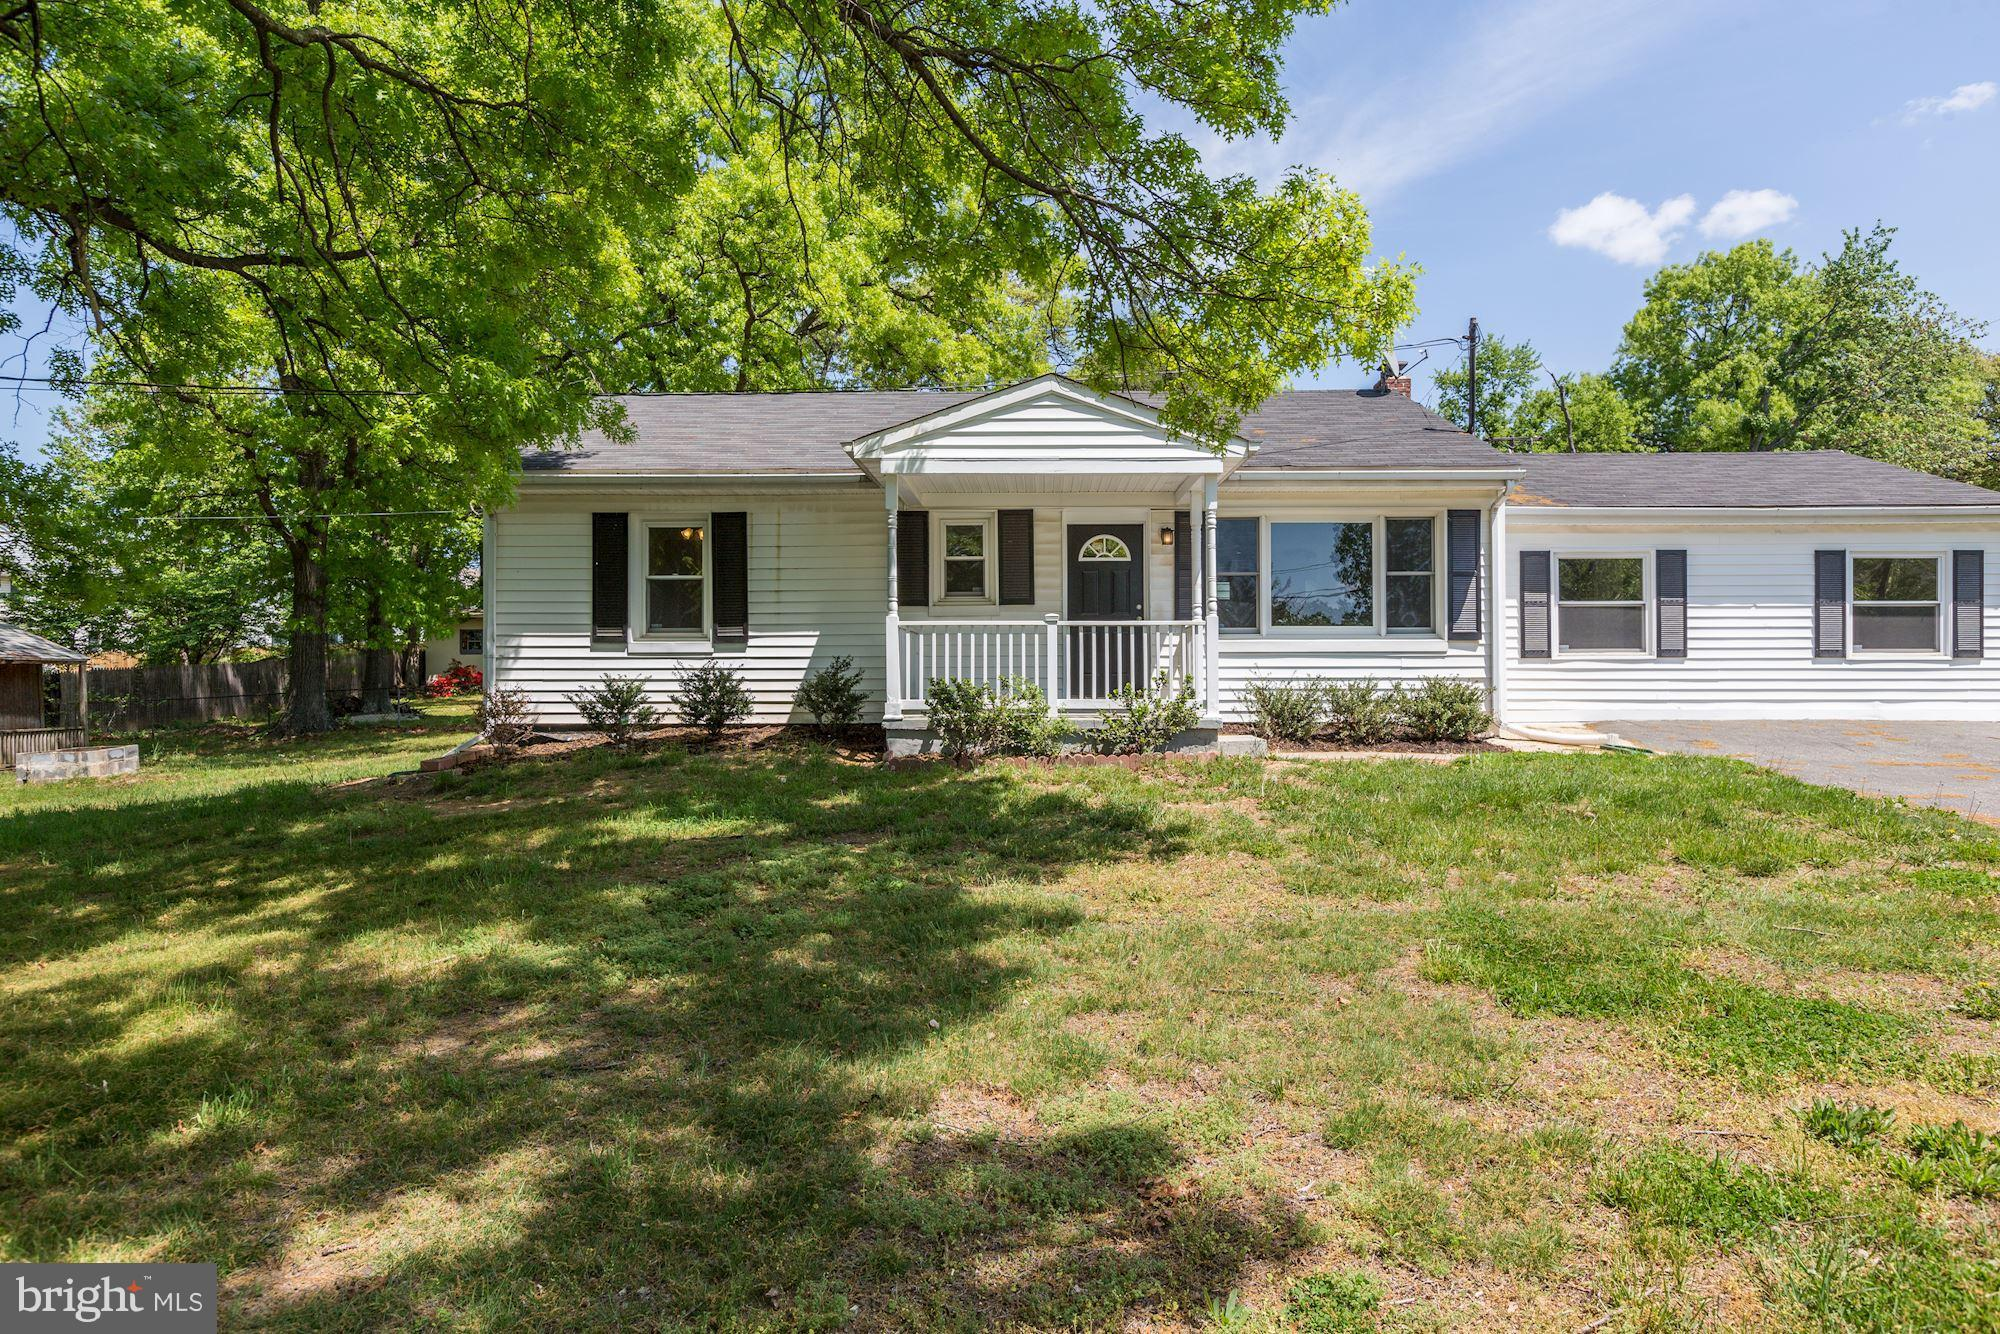 Cozy, newly-renovated rancher in Howard County. Brand-new gourmet kitchen with granite, SS appliances, & charming cabinets. Additional features include designated laundry room, beautiful tiling in bathrooms, hardwood floors throughout, & a basement that boast tons of storage. Take advantage of the spacious flat, fenced-in yard & driveway w/ a plethora of parking! You do not want to miss this home